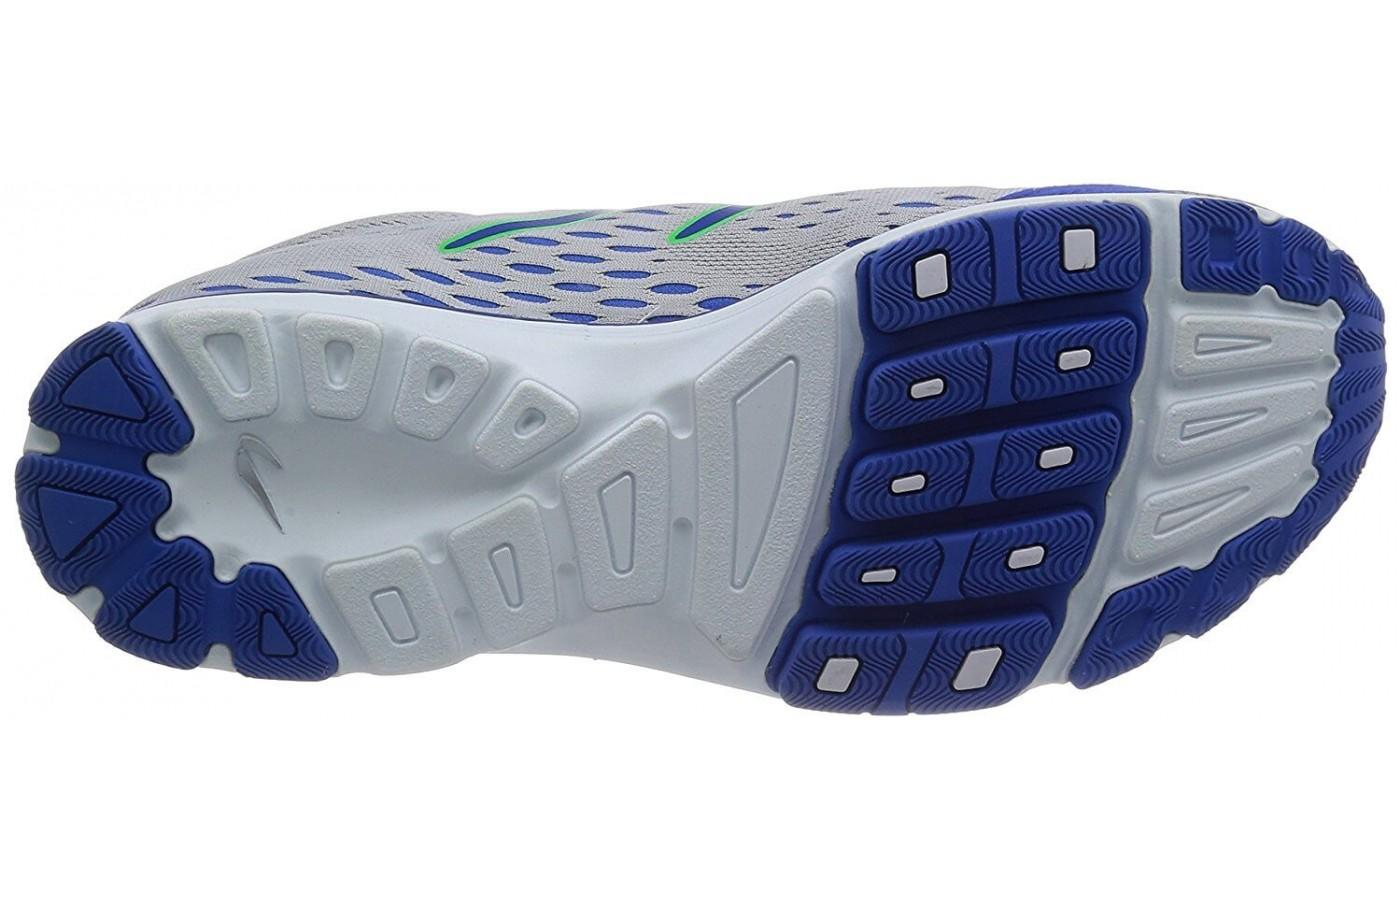 The outsole of the Aha II provide extra traction and flexibility.